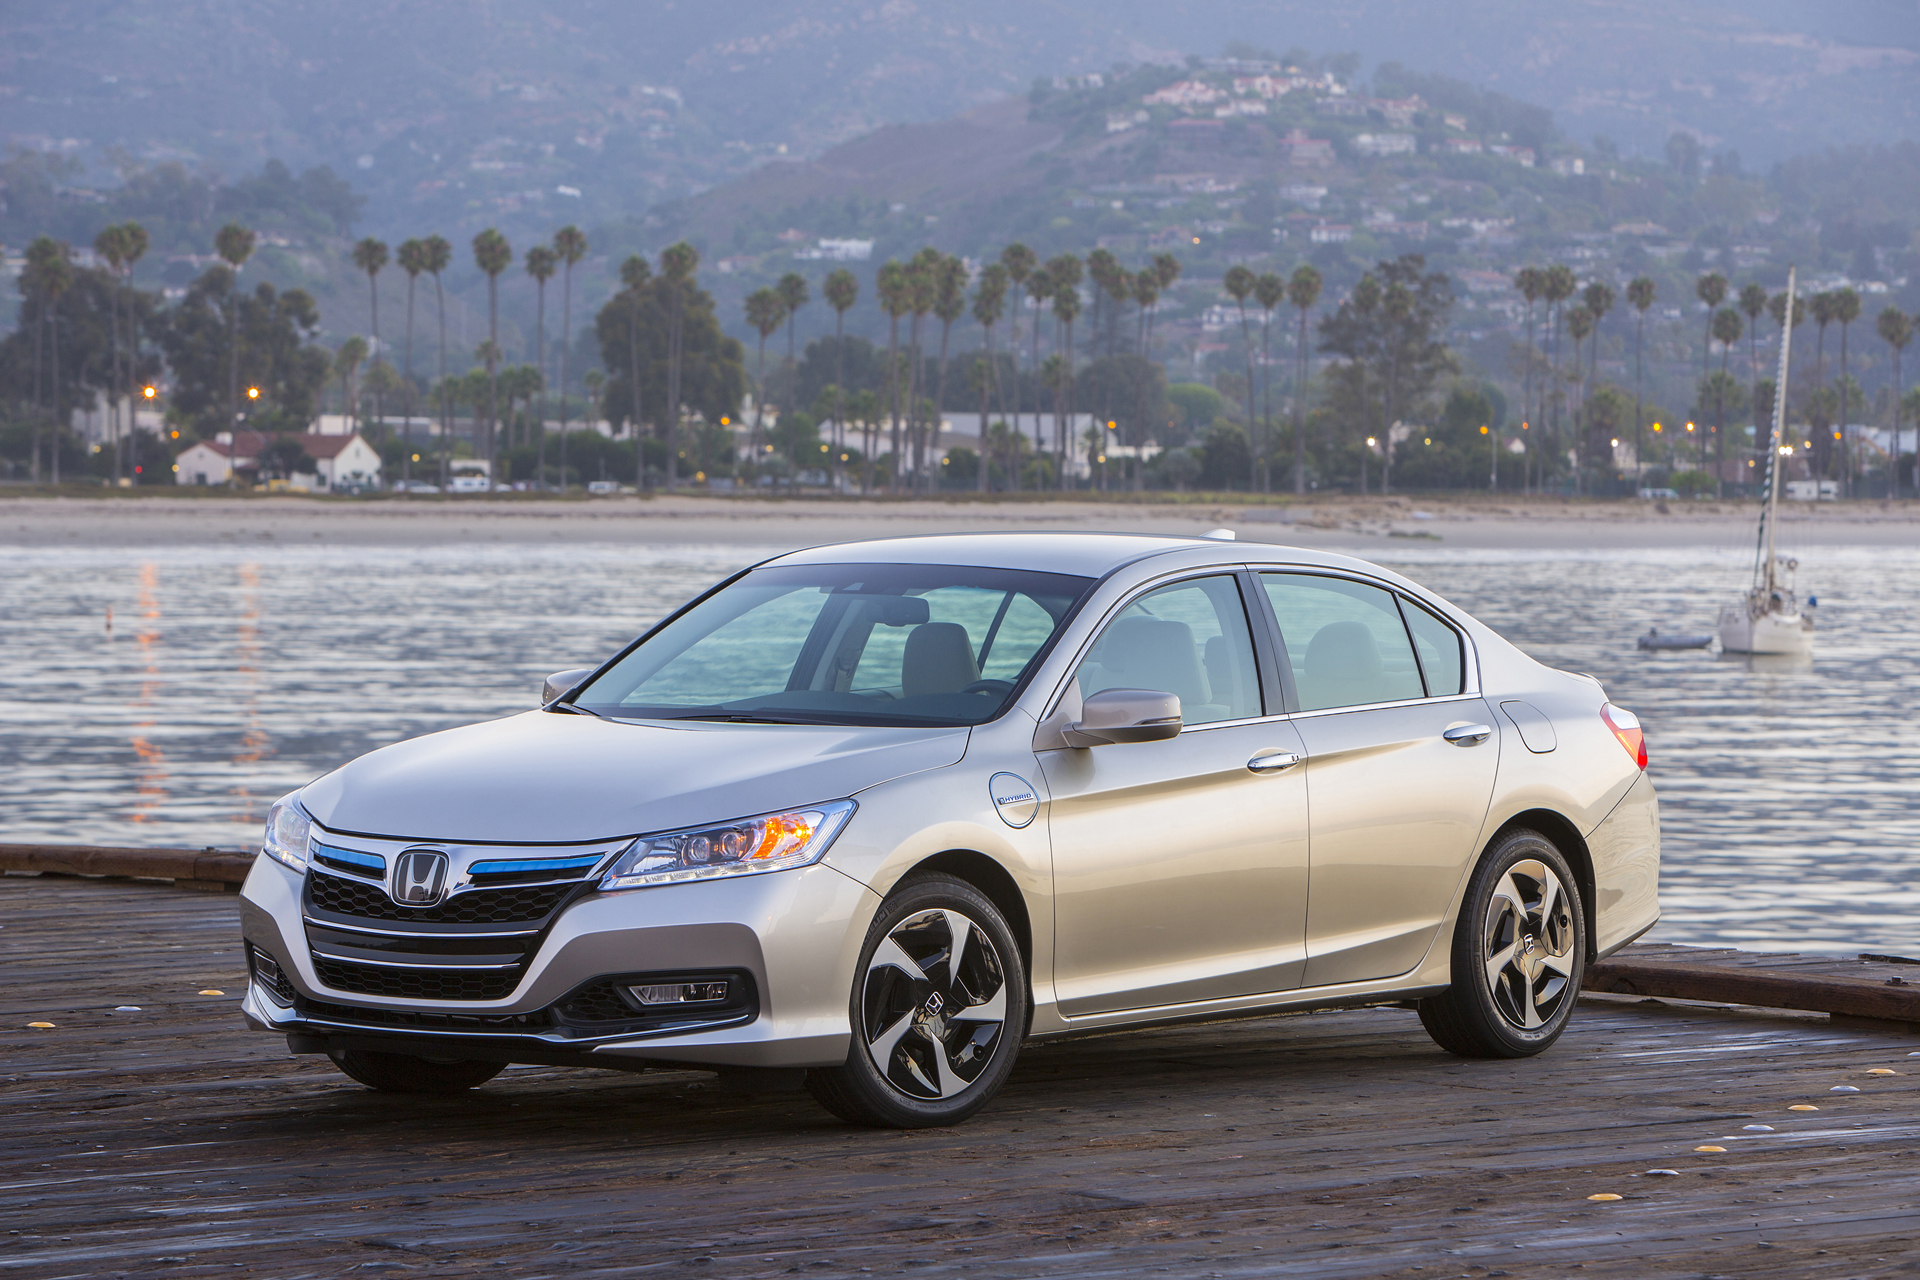 Honda Accord PHEV pictures and wallpaper